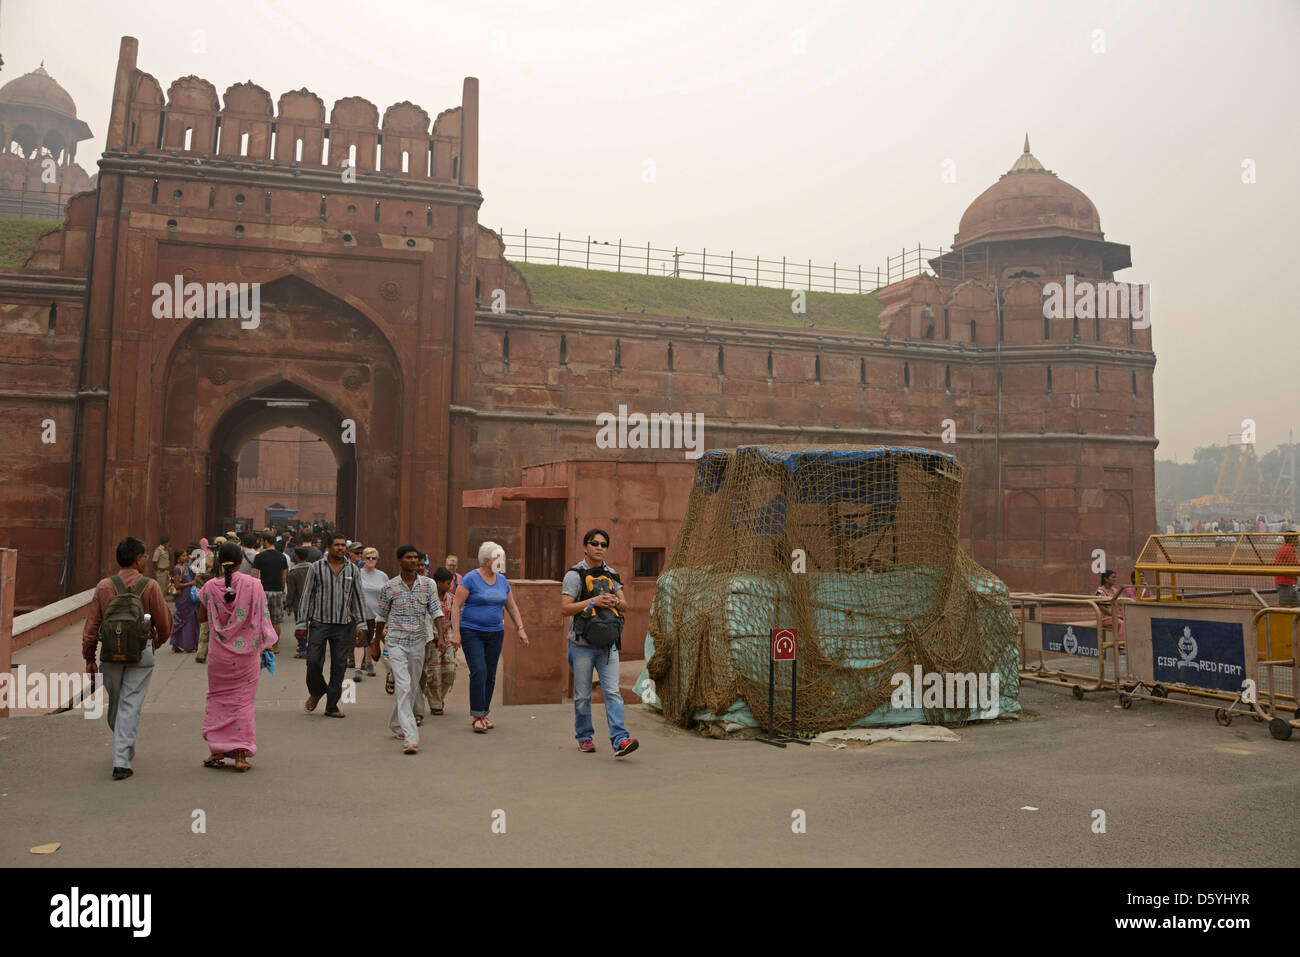 Visitors enter the Lahore Gate to the Red Fort in Old Delhi, India - Stock Image